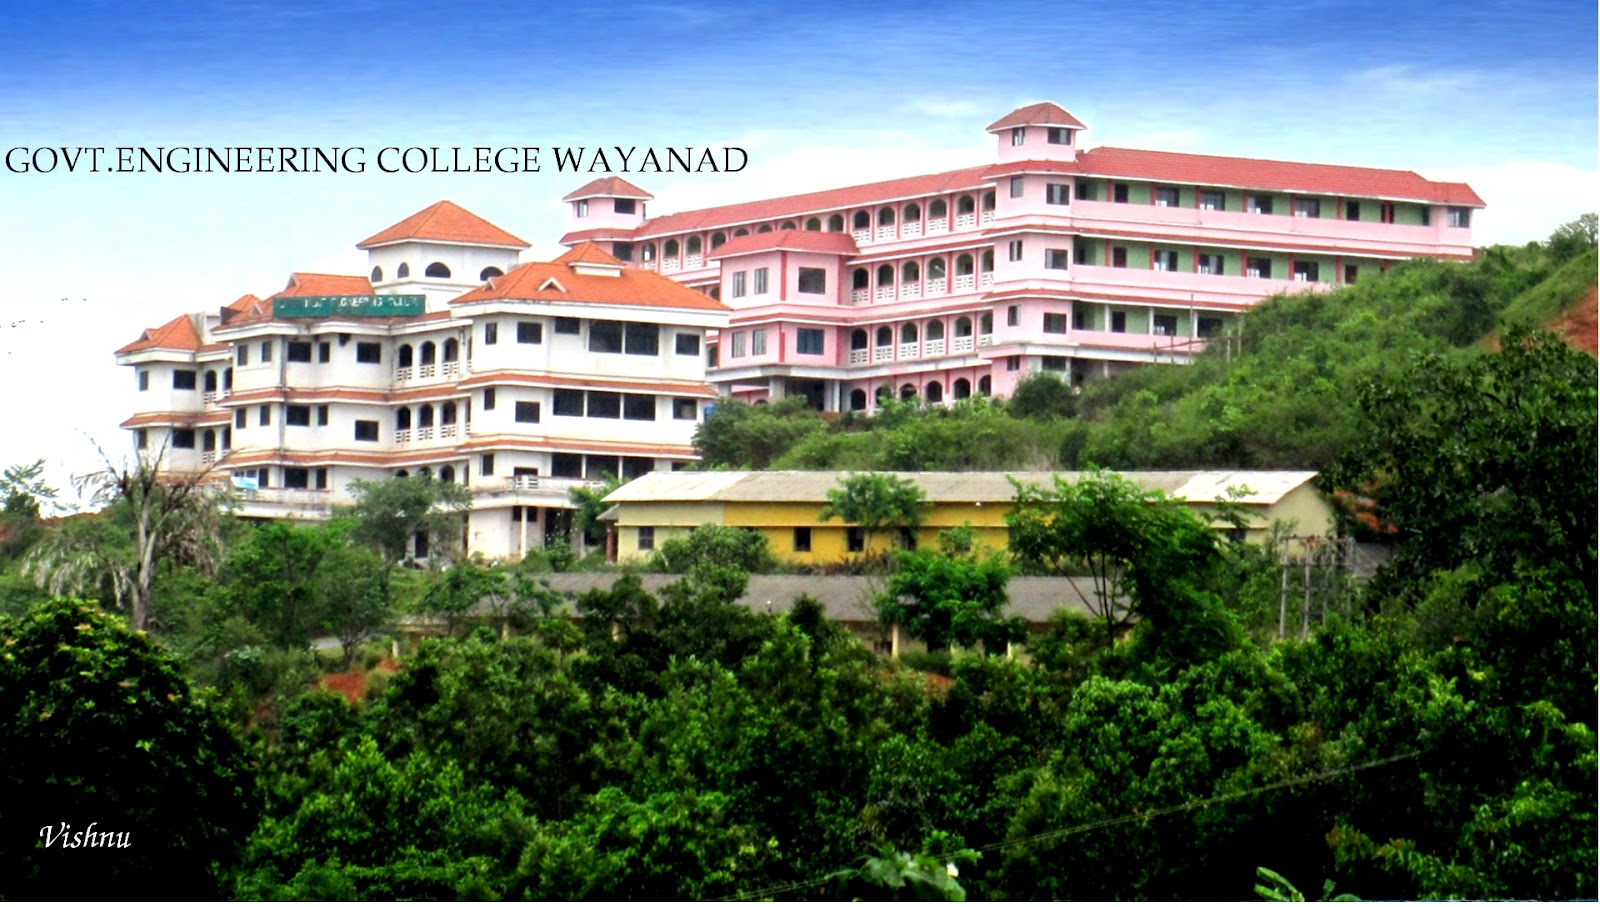 Govtengg College Wayanad on nature frames